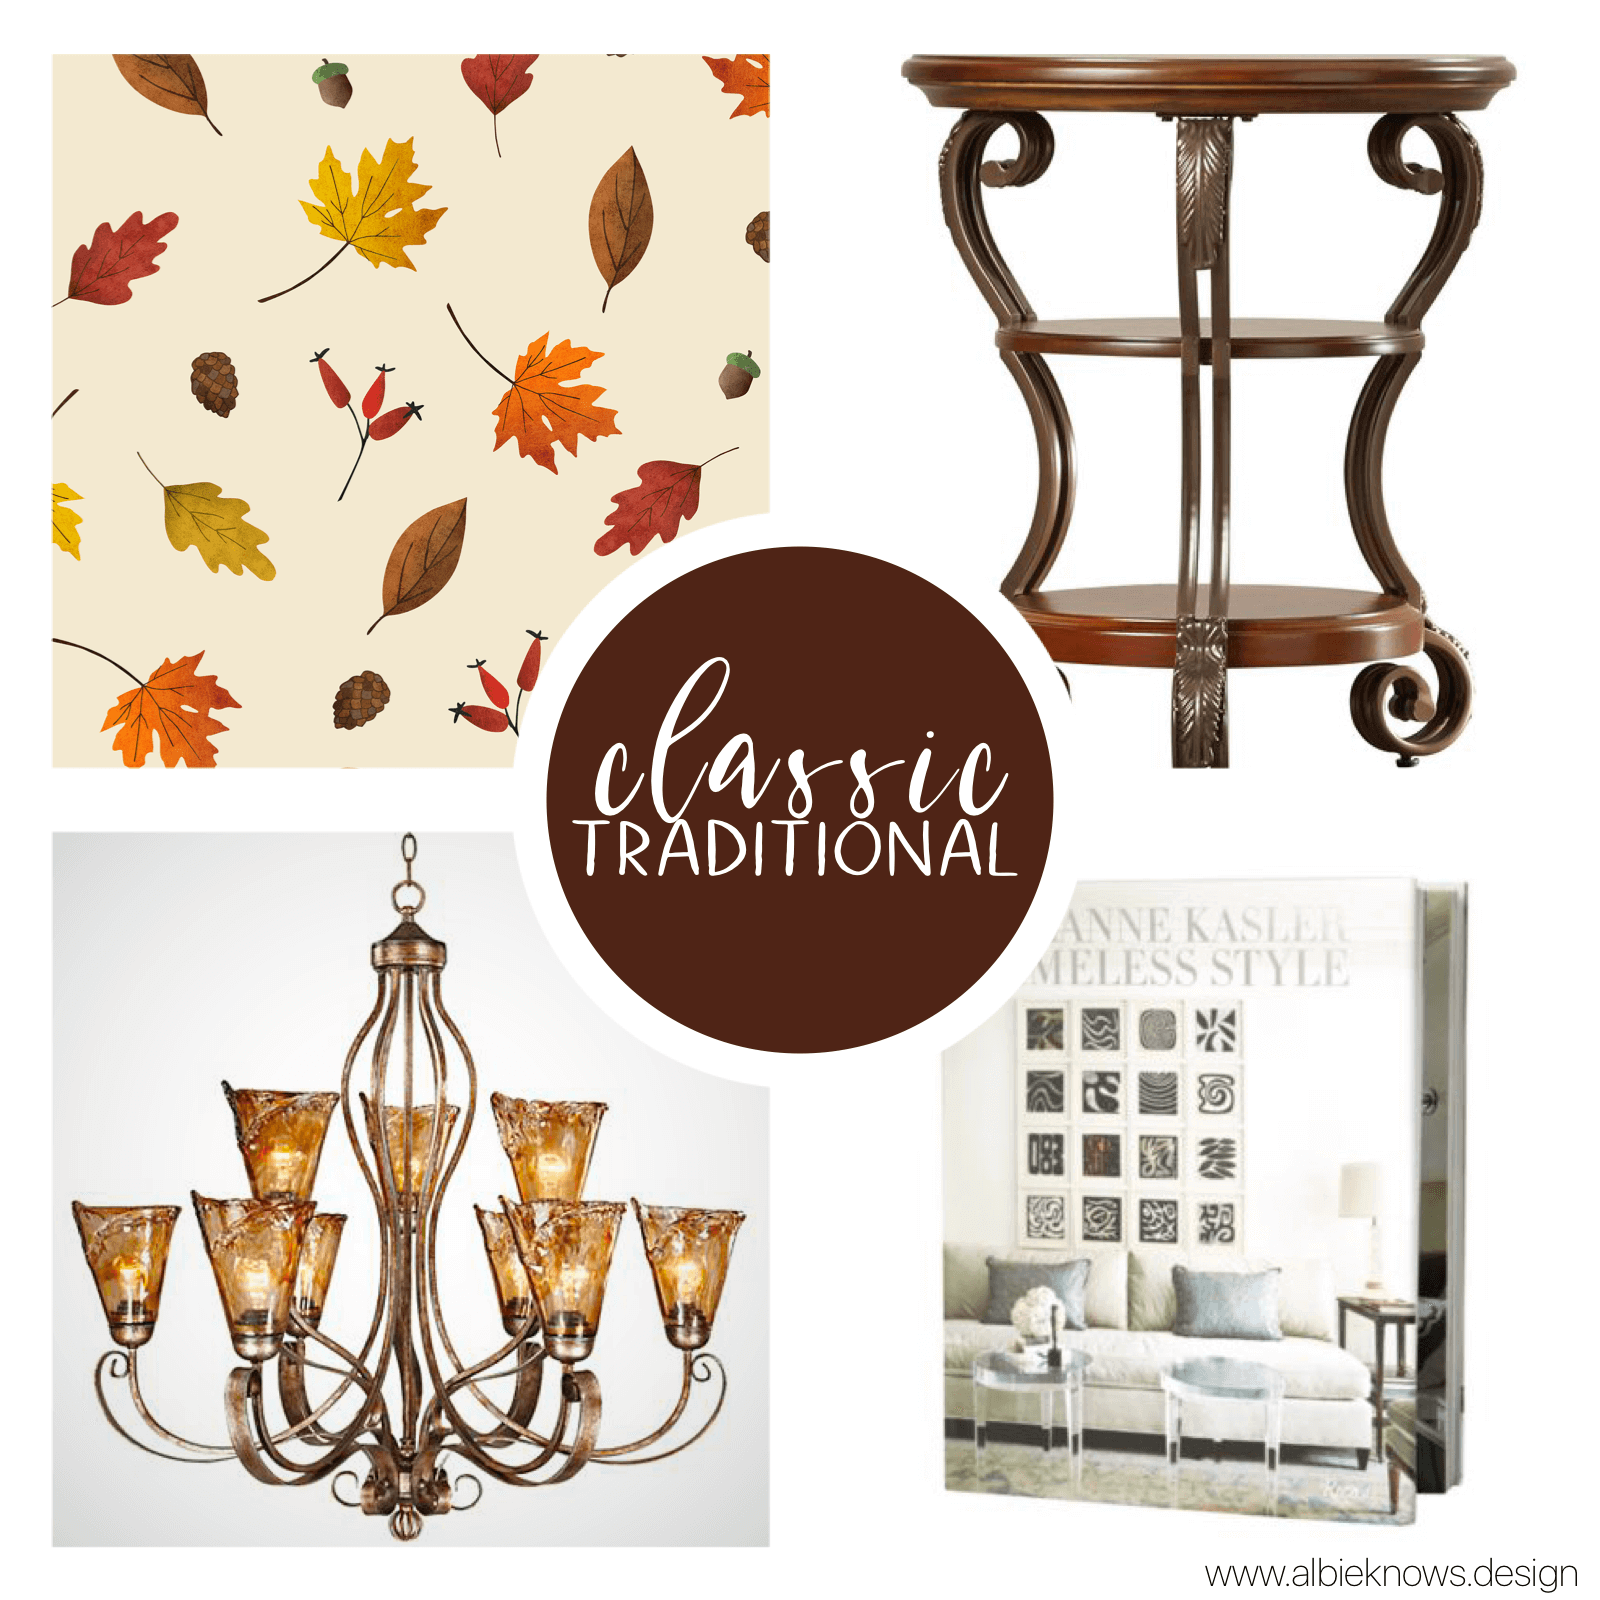 The consummate curator, you're drawn to elegant & formal design — one that is harmonious, ordered, and timeless in feel. Sweeping staircases, ornate features, and stone elements are key in creating your classic look. You shy away from bold, bright colors, favoring a more natural palette & muted terracottas.    READ MORE